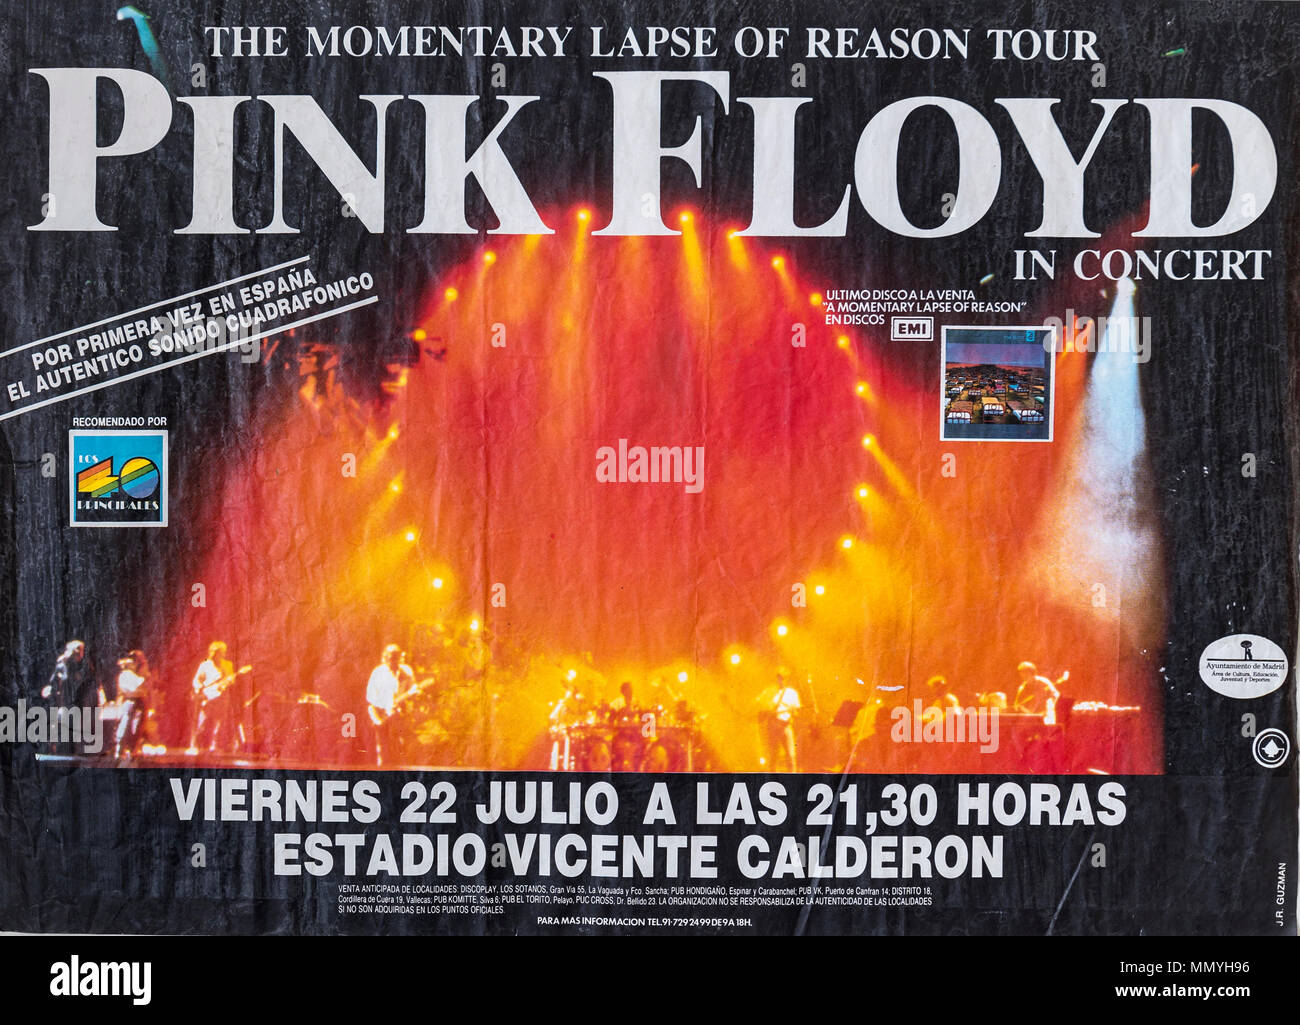 pink-floyd-in-concert-1988-the-momentary-lapse-of-reason-tour-musical-concert-poster-MMYH96.jpg